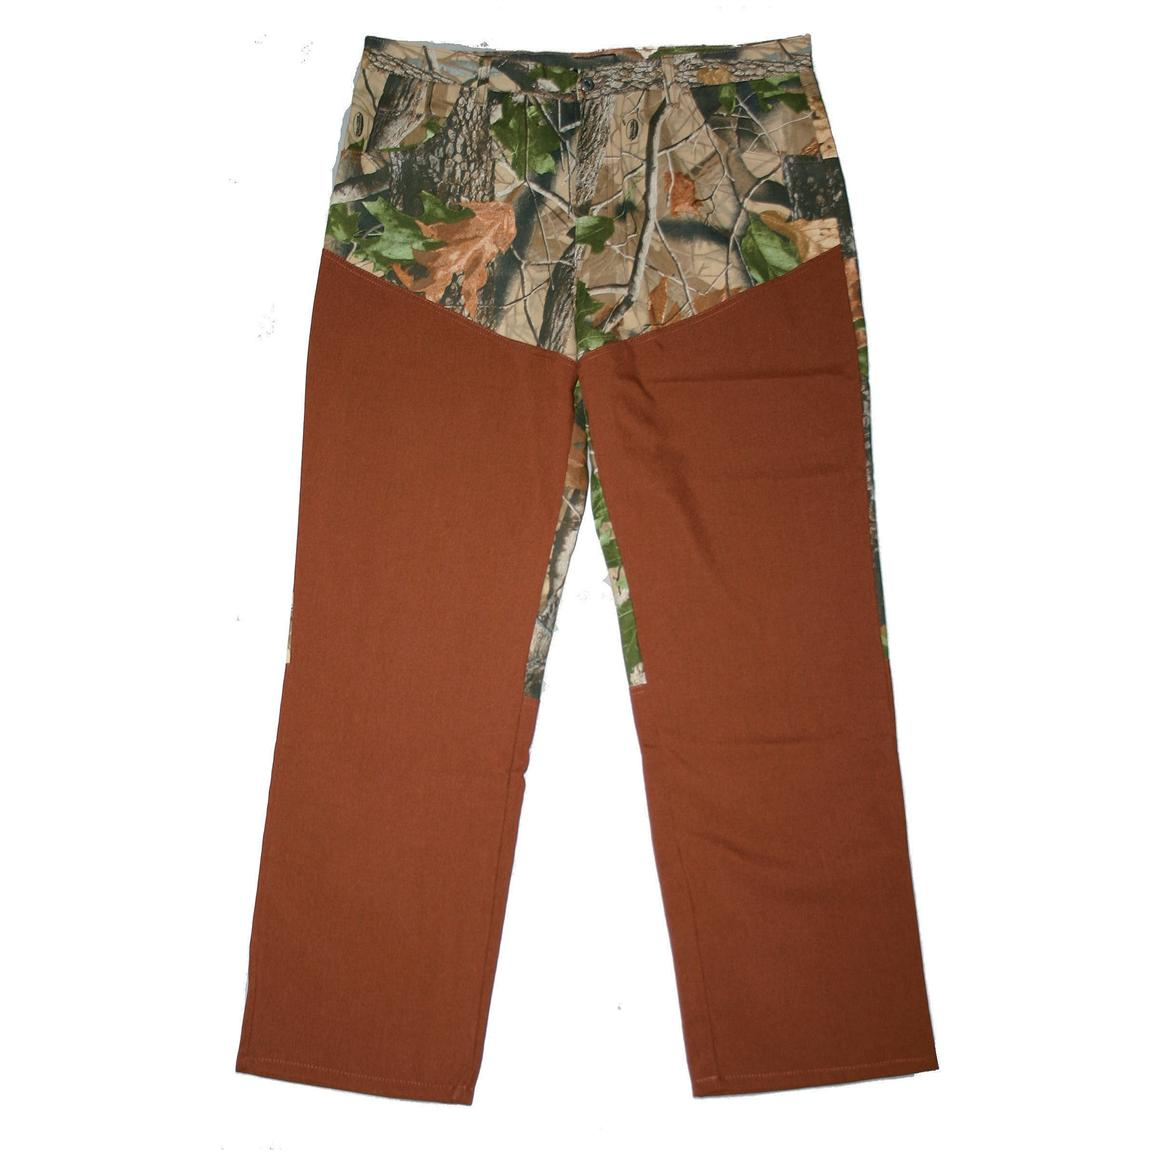 Walls Upland Field Series Camo Duck Brush Pants, Realtree All Purpose